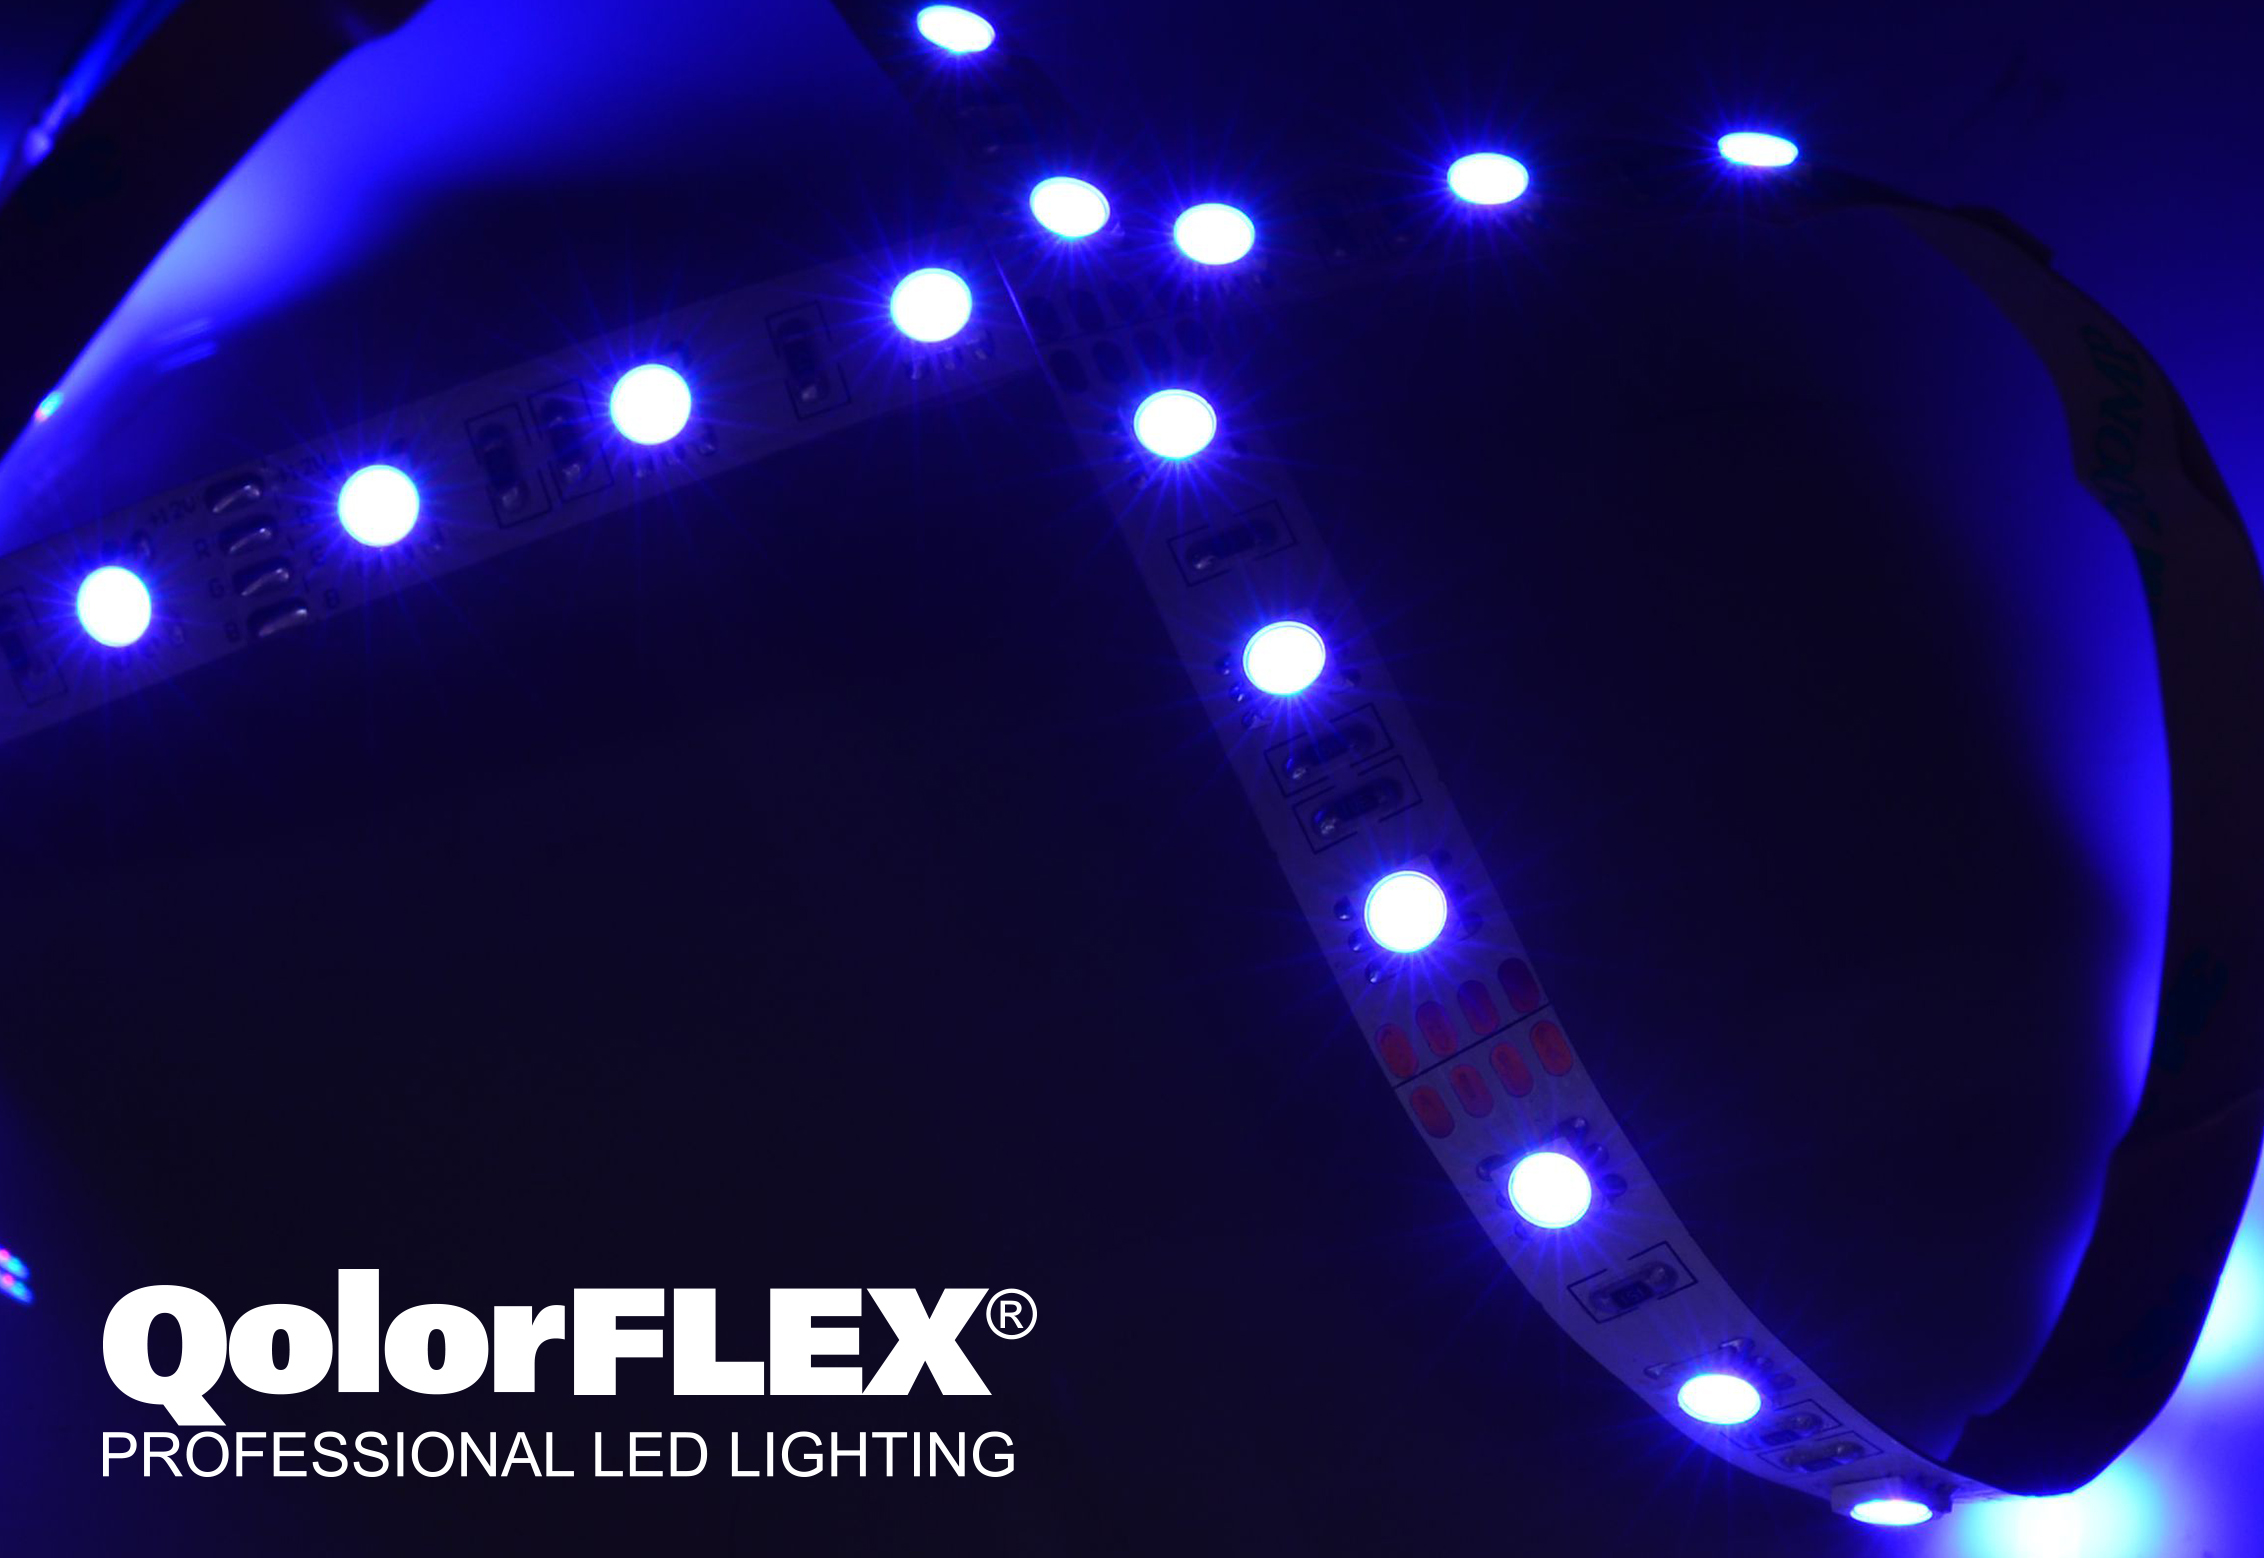 QolorFLEX® LED Tape